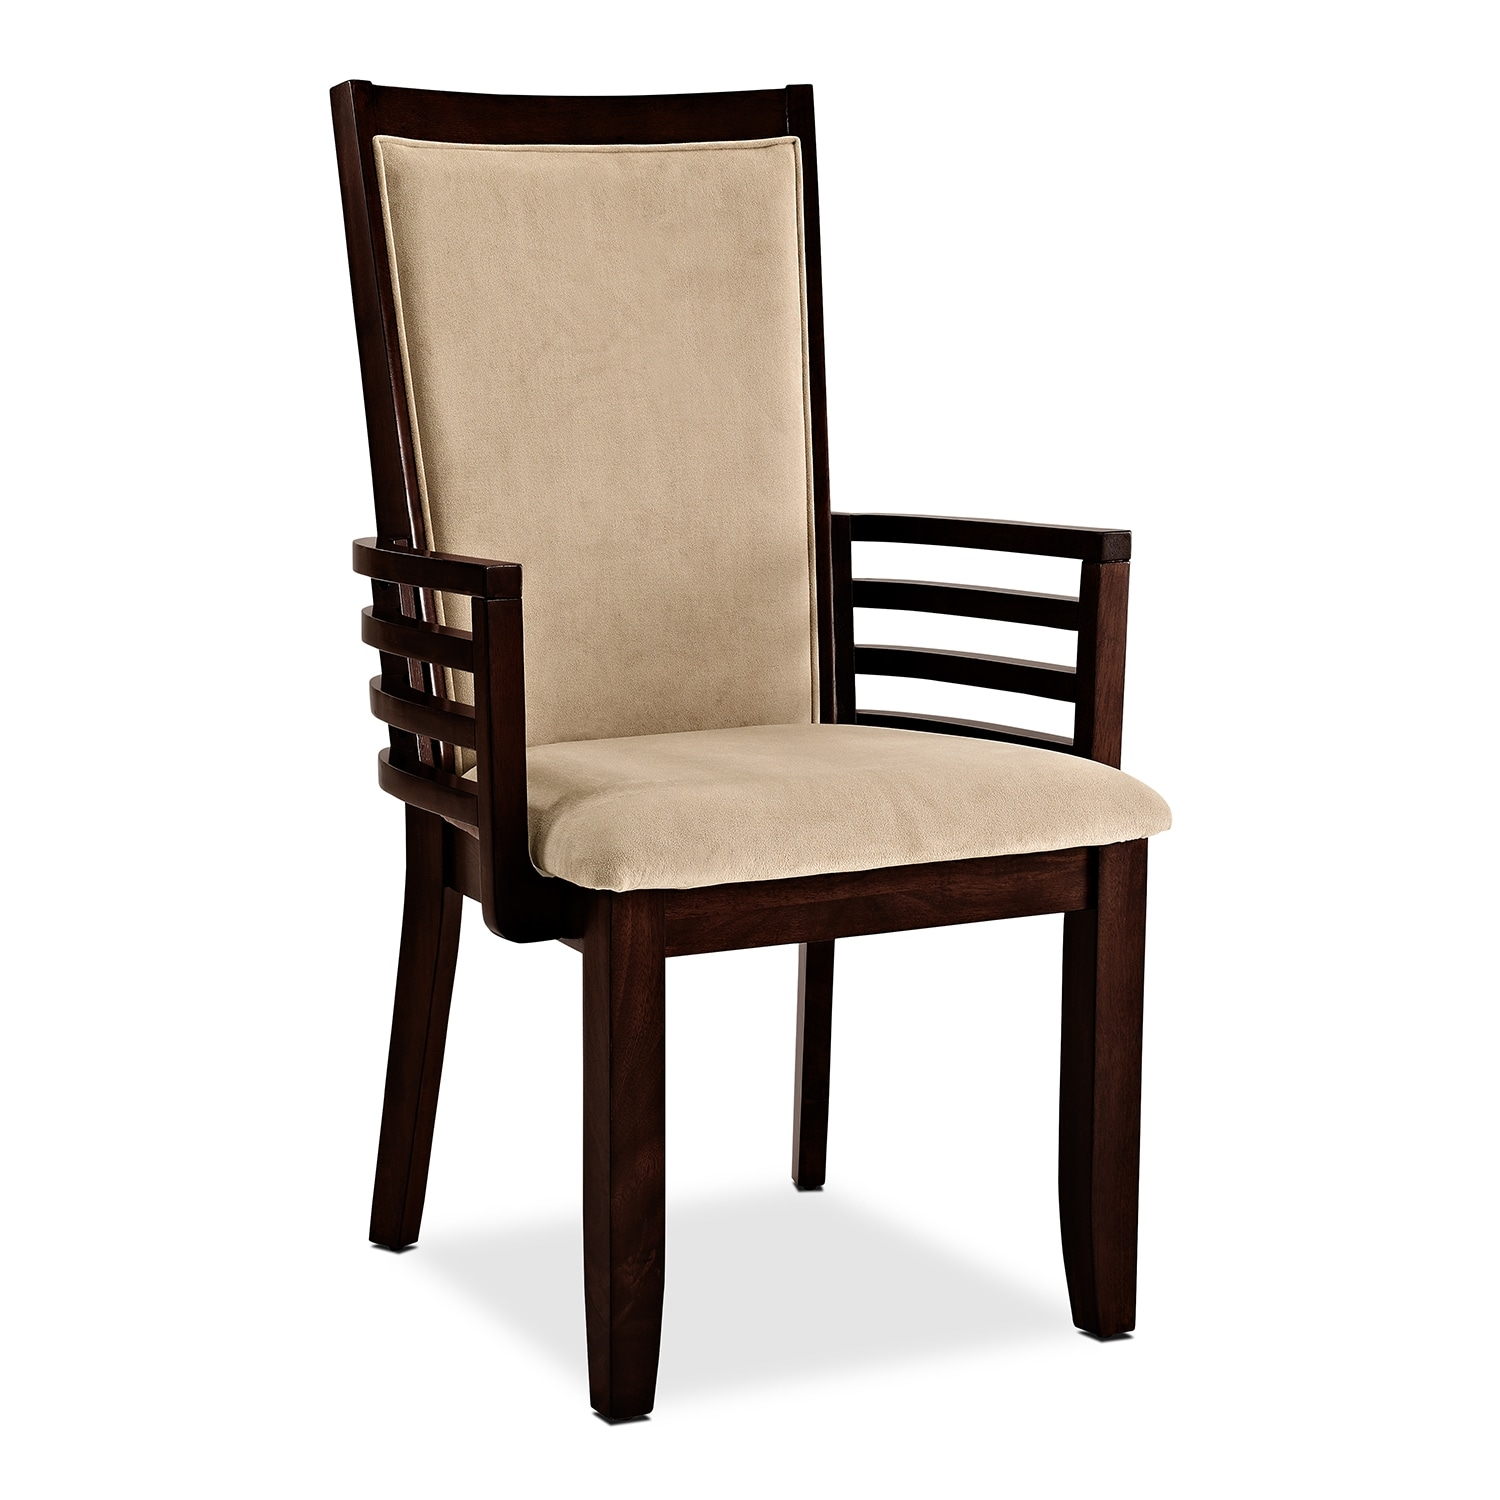 Paragon Arm Chair - Camel